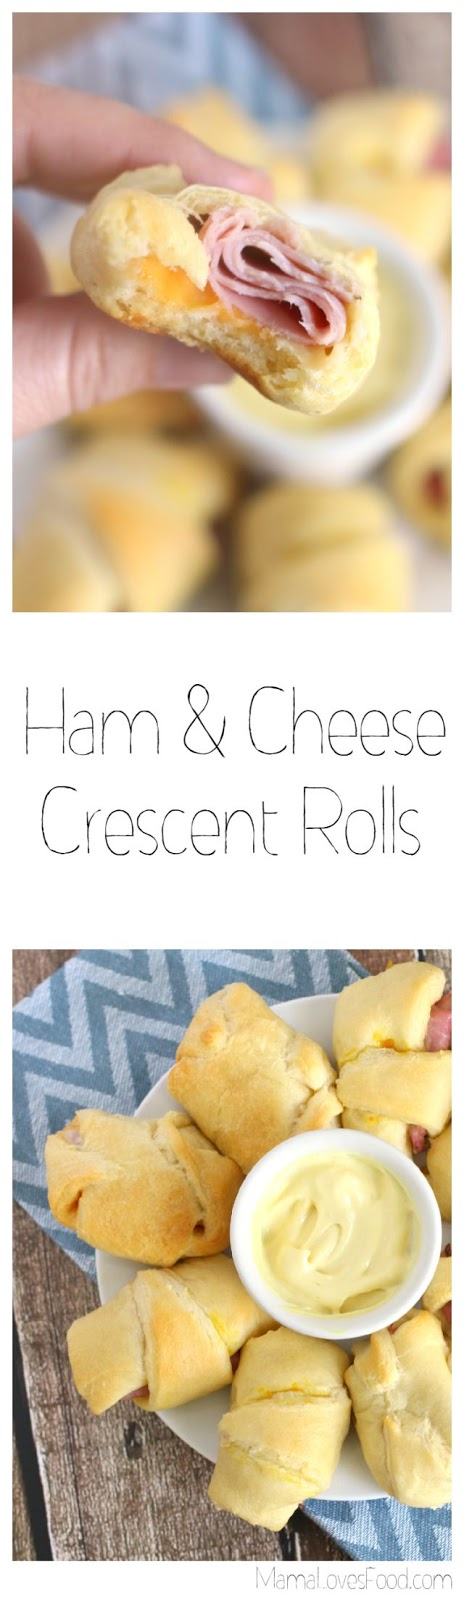 Ham & Cheese Crescent Rolls